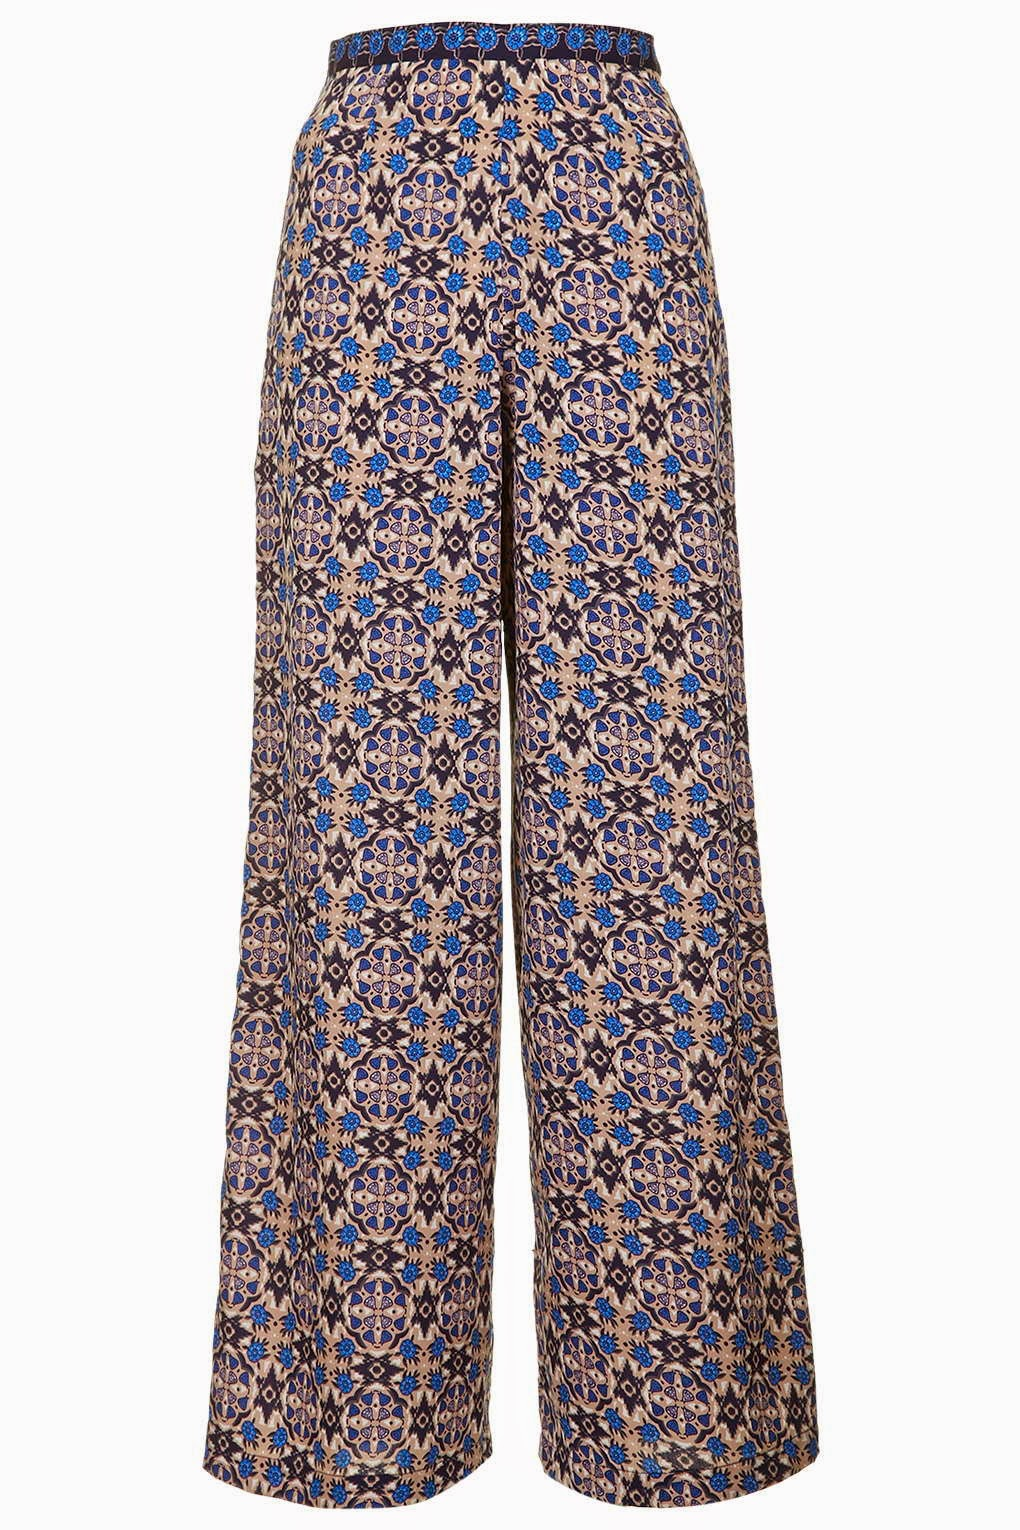 patterned wide leg trousers topshop, topshop wide leg trousers,